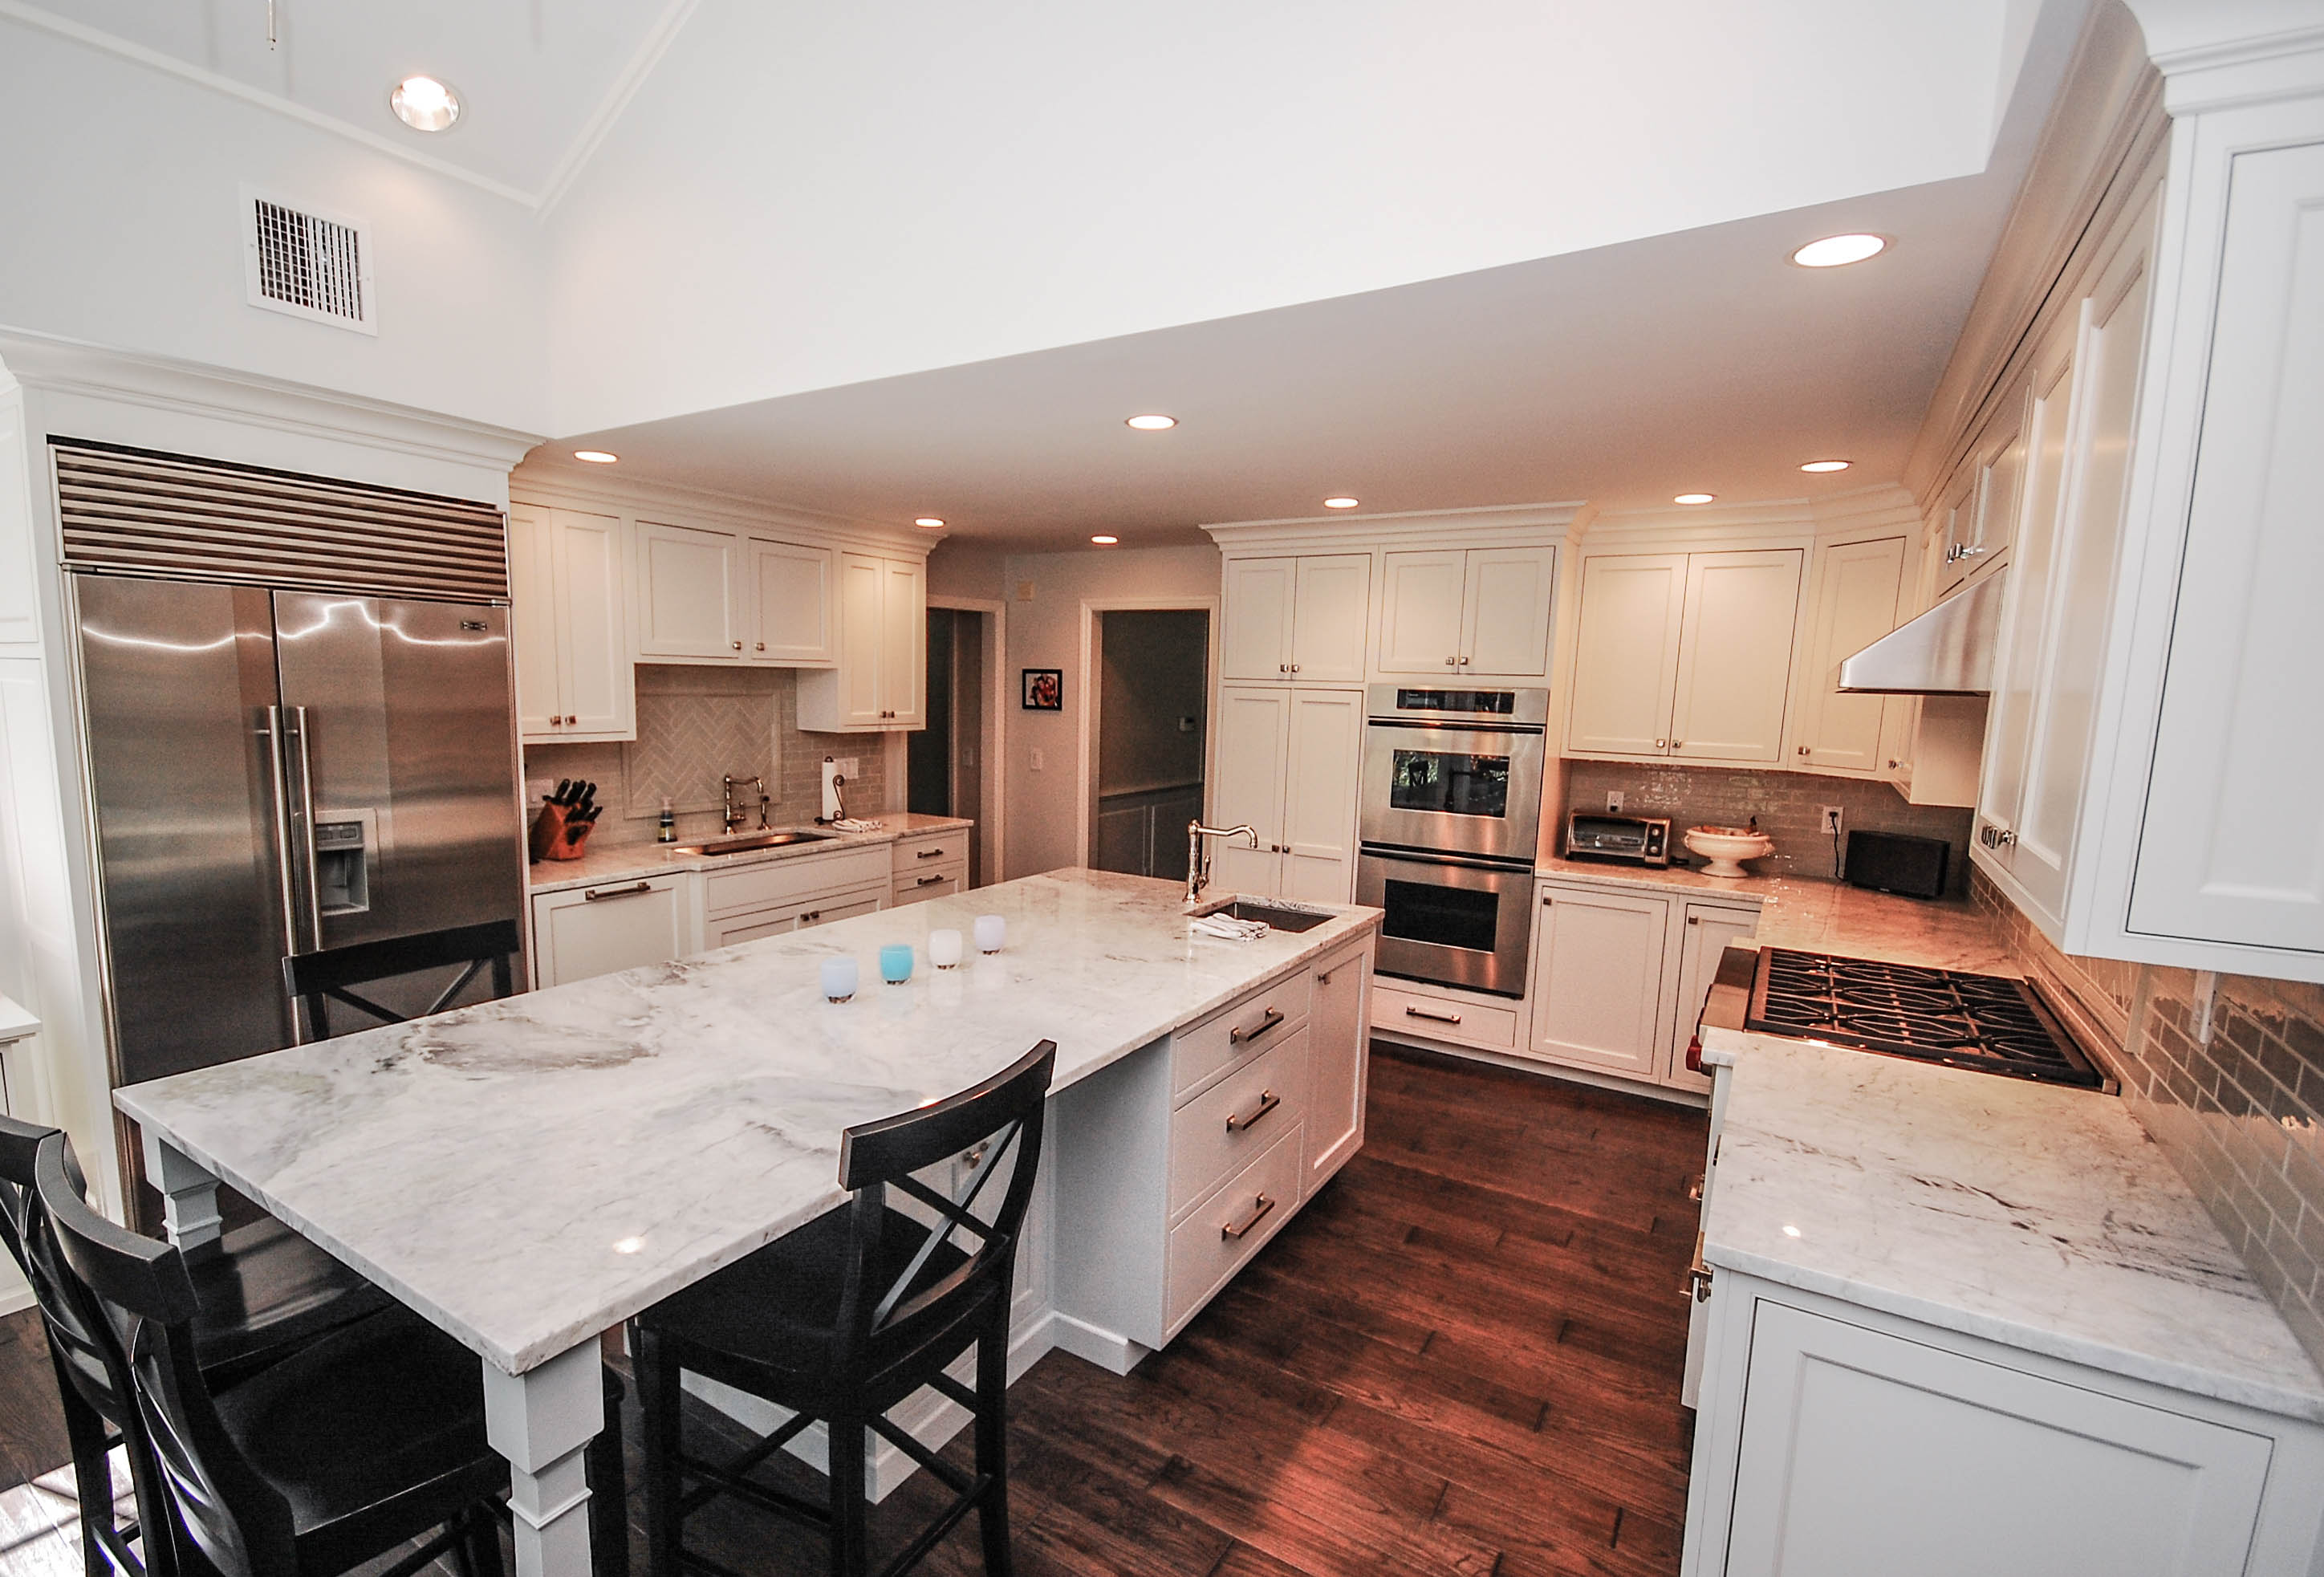 general contractor, kitchen with large island eating area renovated by SIP Building Solutions - Westport, Fairfield, Stamford, Greenwich, Danbury CT